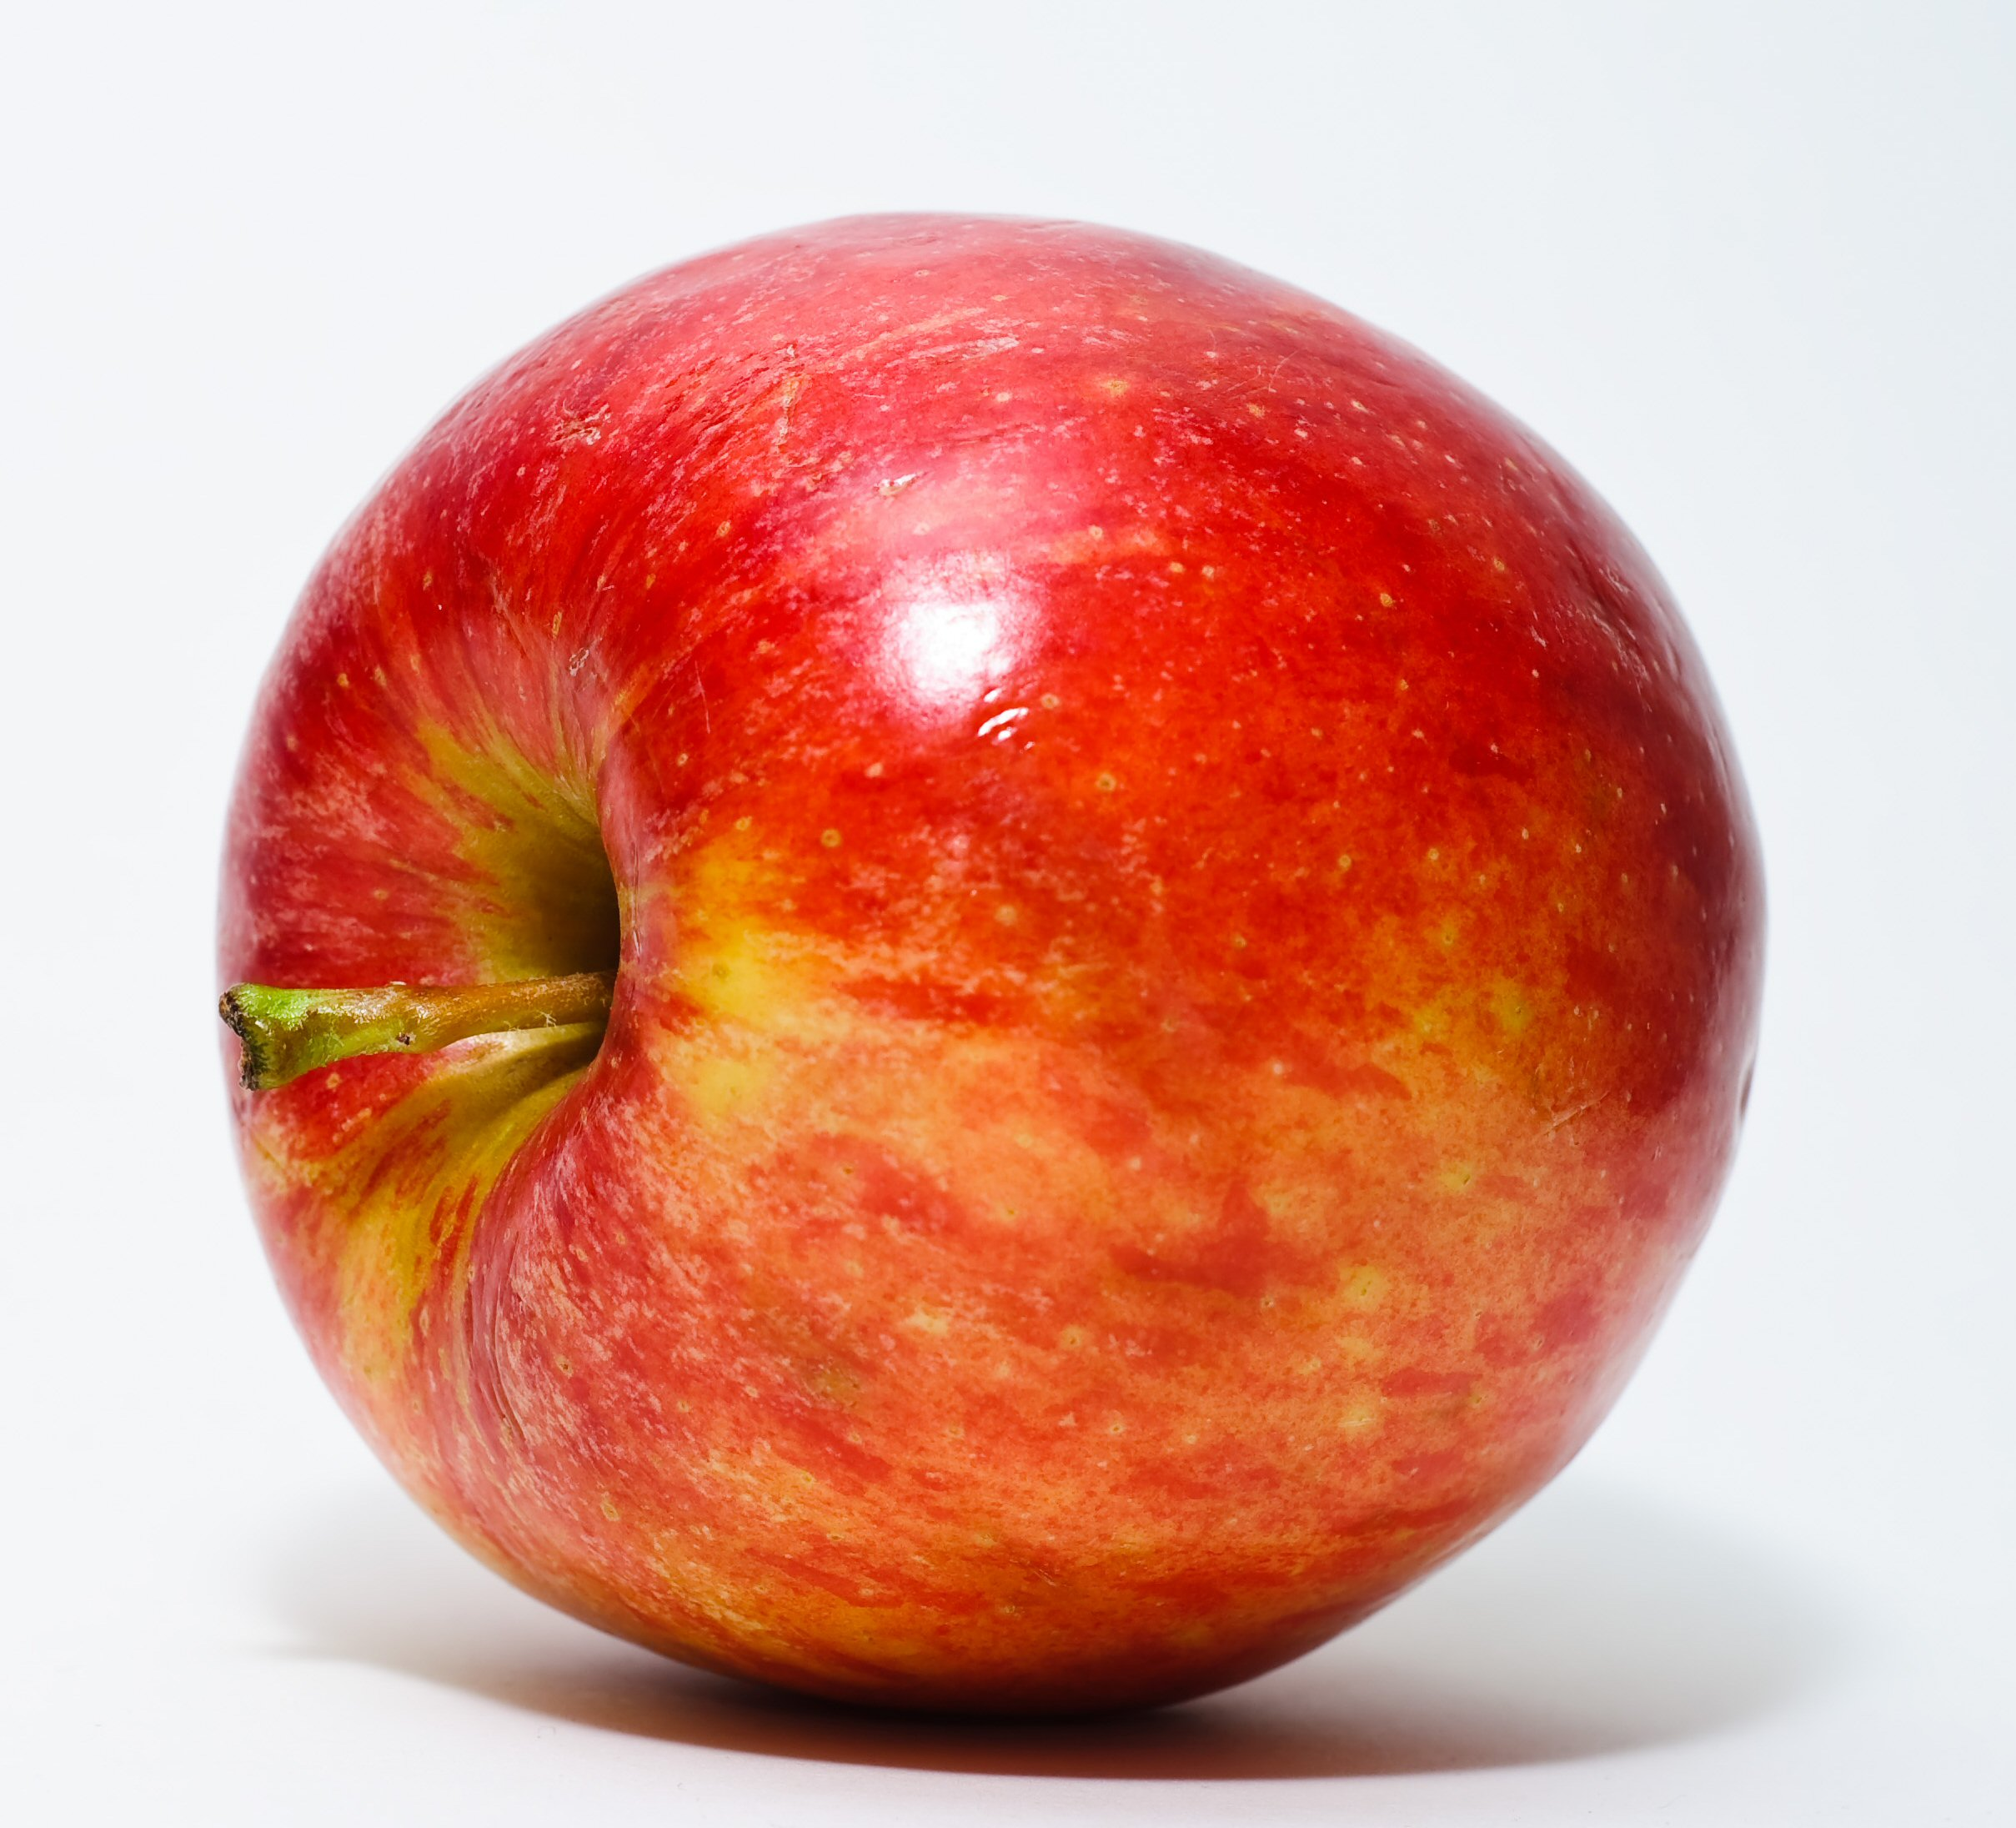 https://upload.wikimedia.org/wikipedia/commons/1/15/Red_Apple.jpg